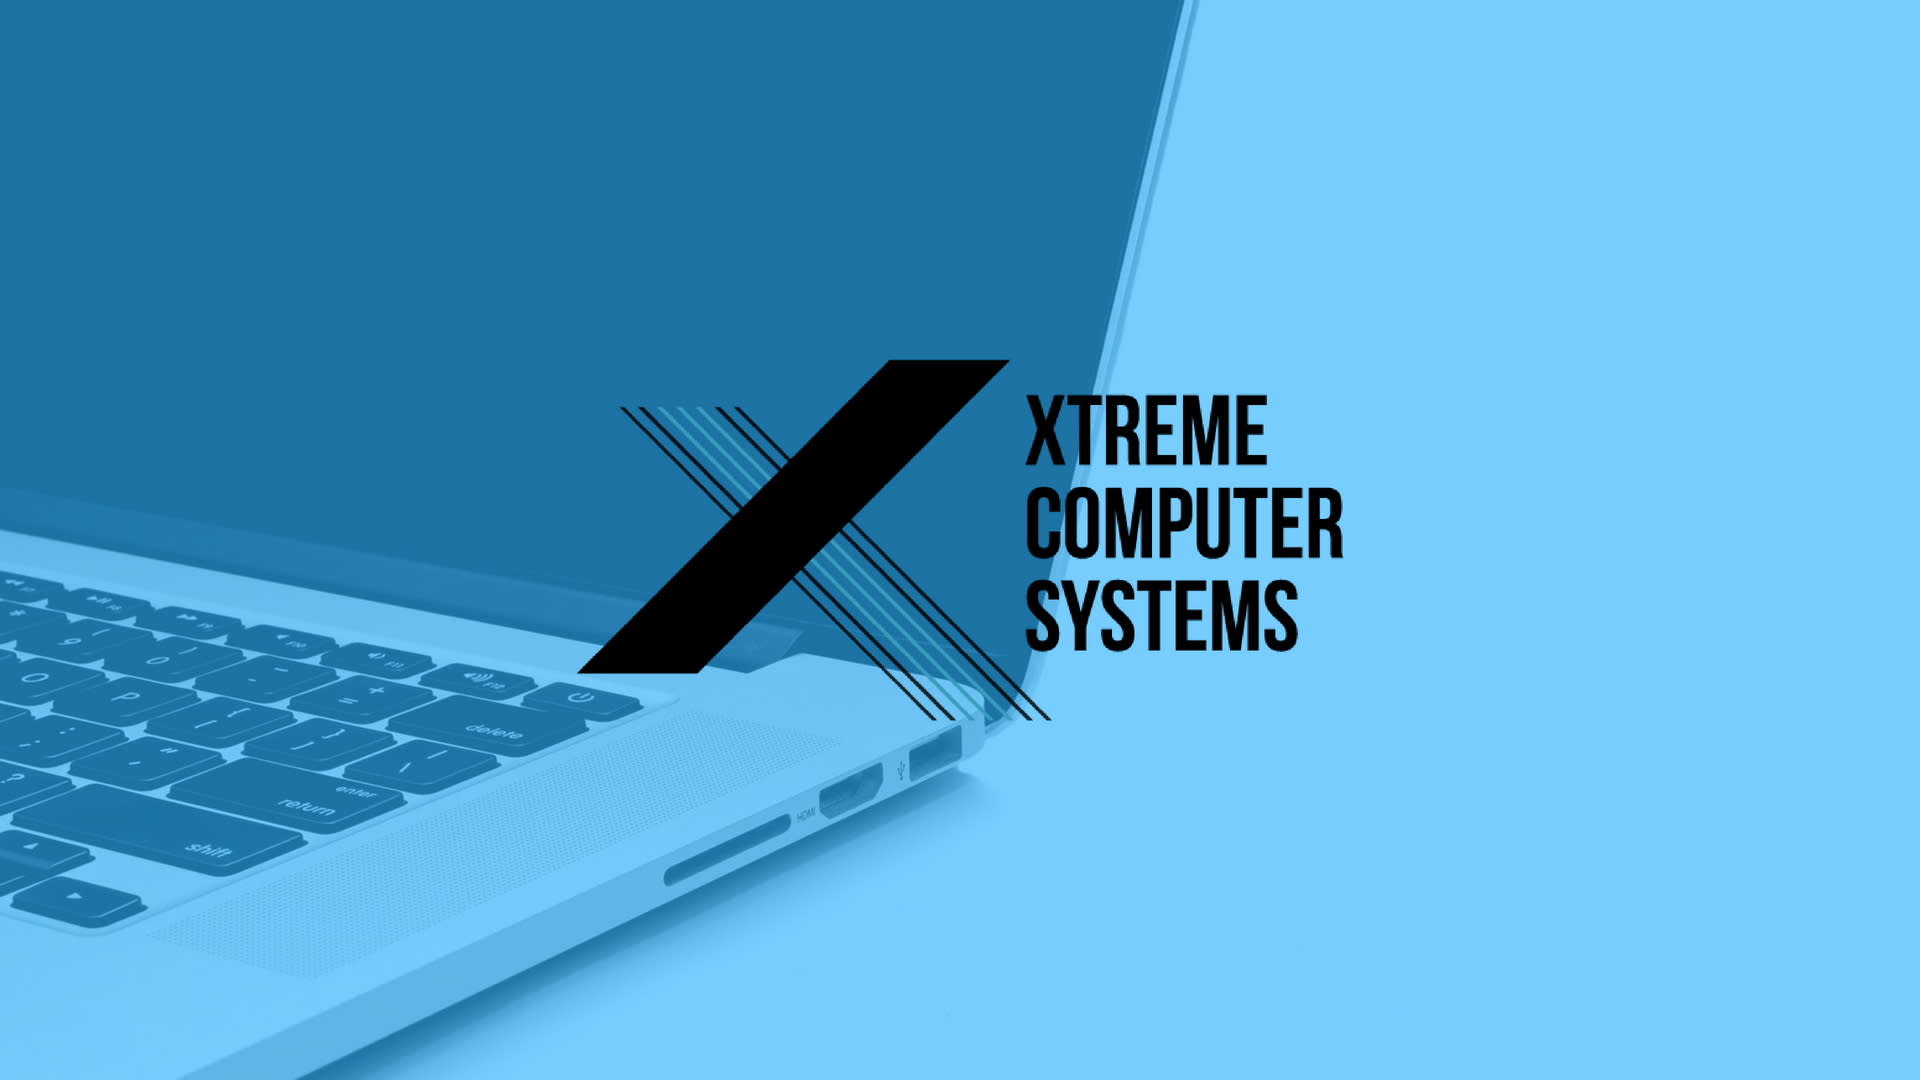 Xtreme Computer Systems image 1